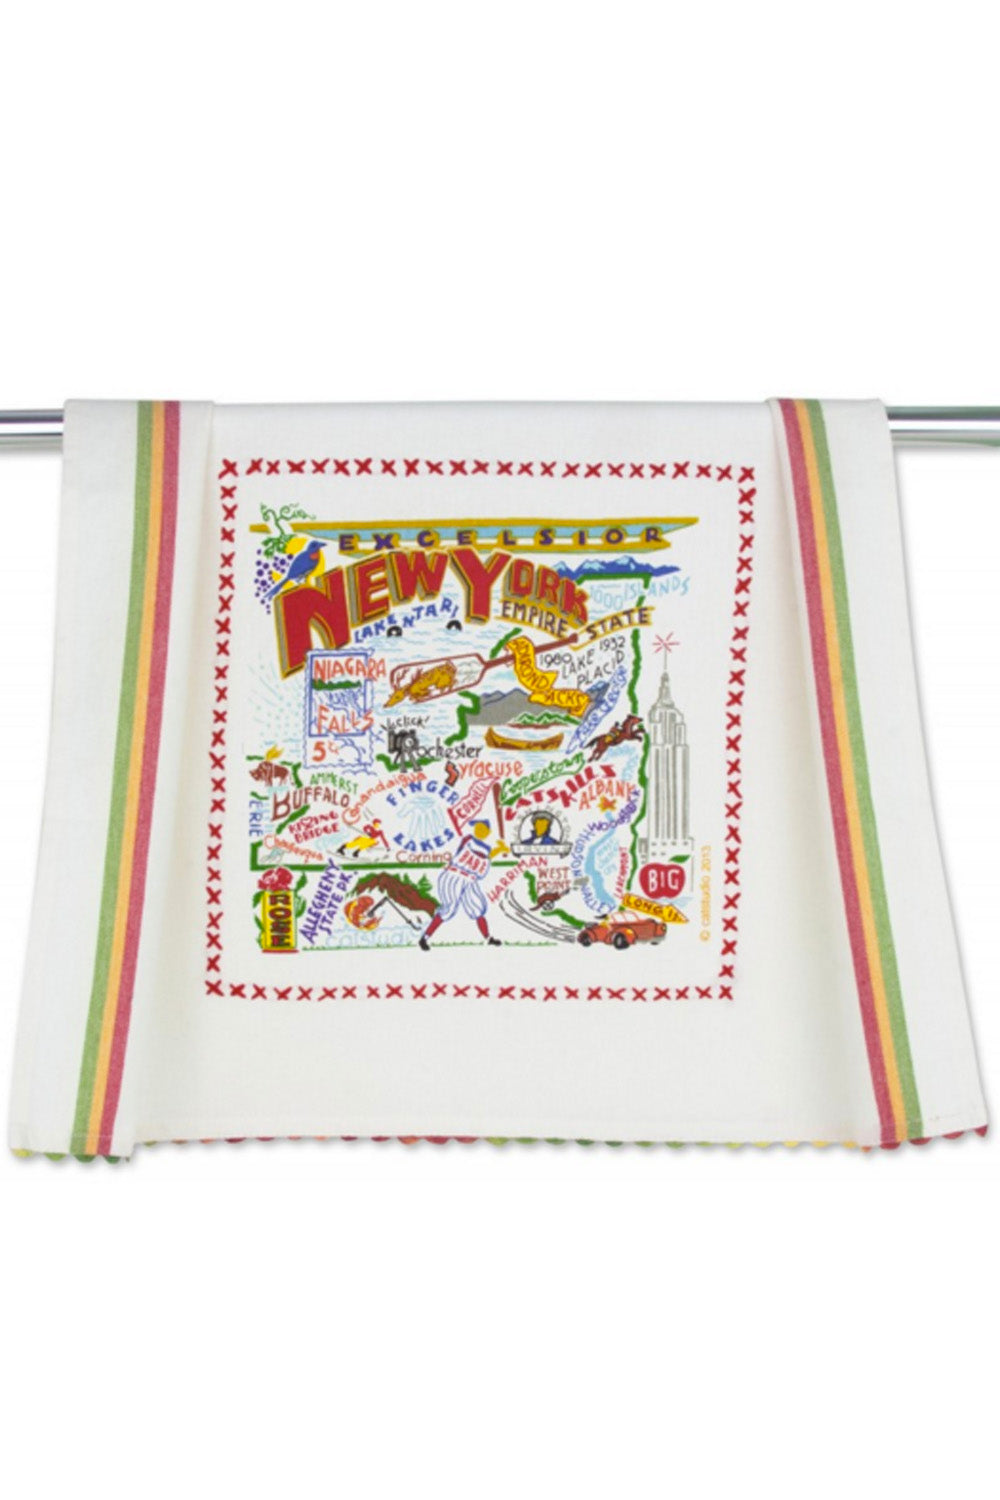 Embroidered Dish Towel - New York